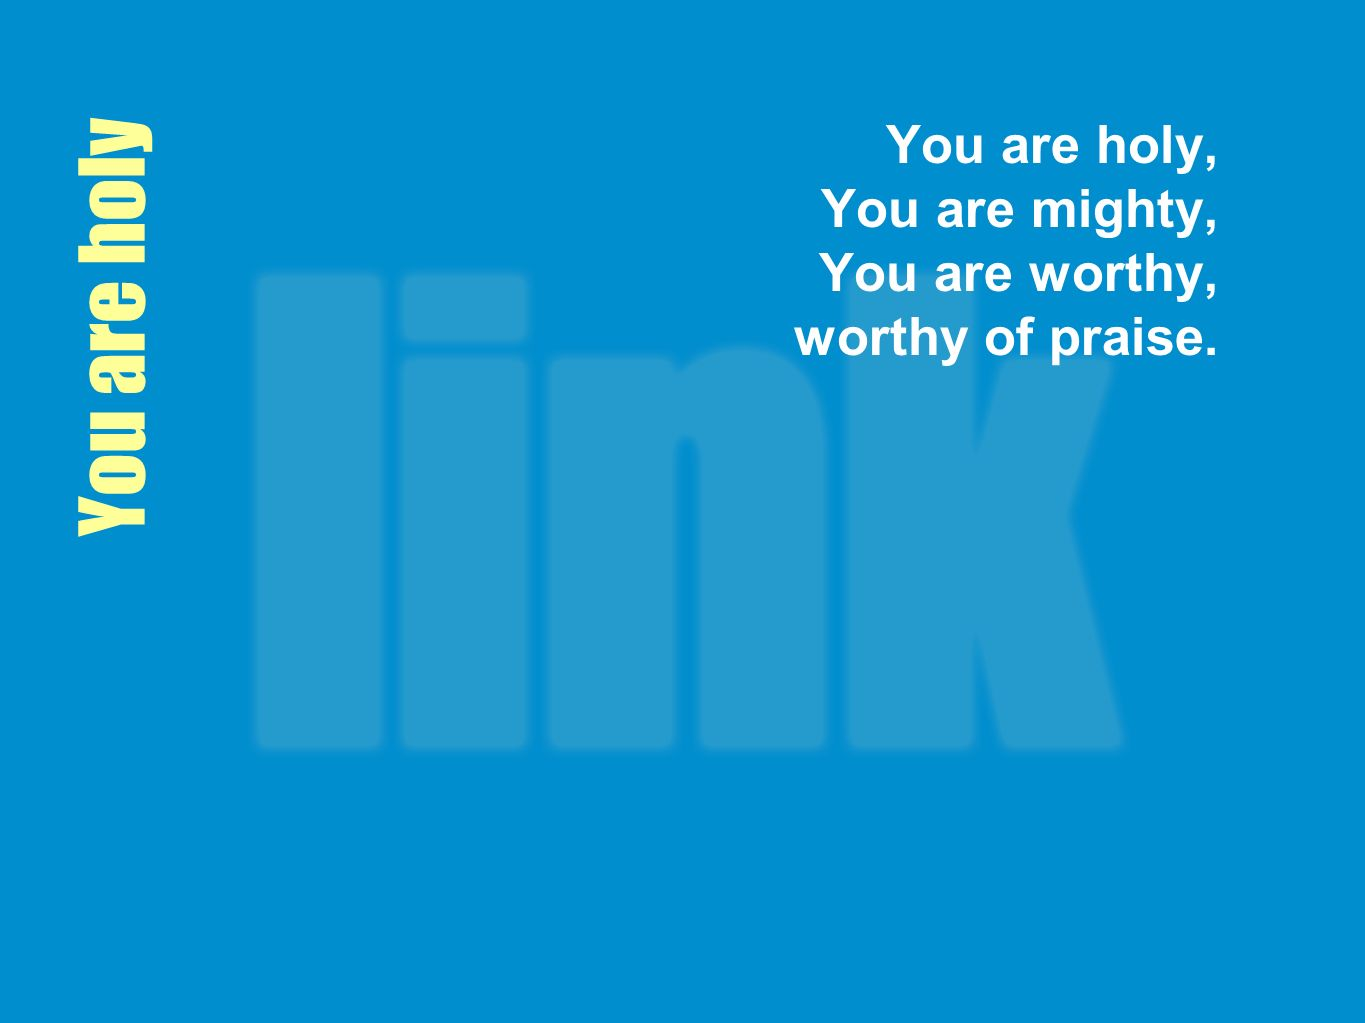 You are holy You are holy, You are mighty, You are worthy, worthy of praise.